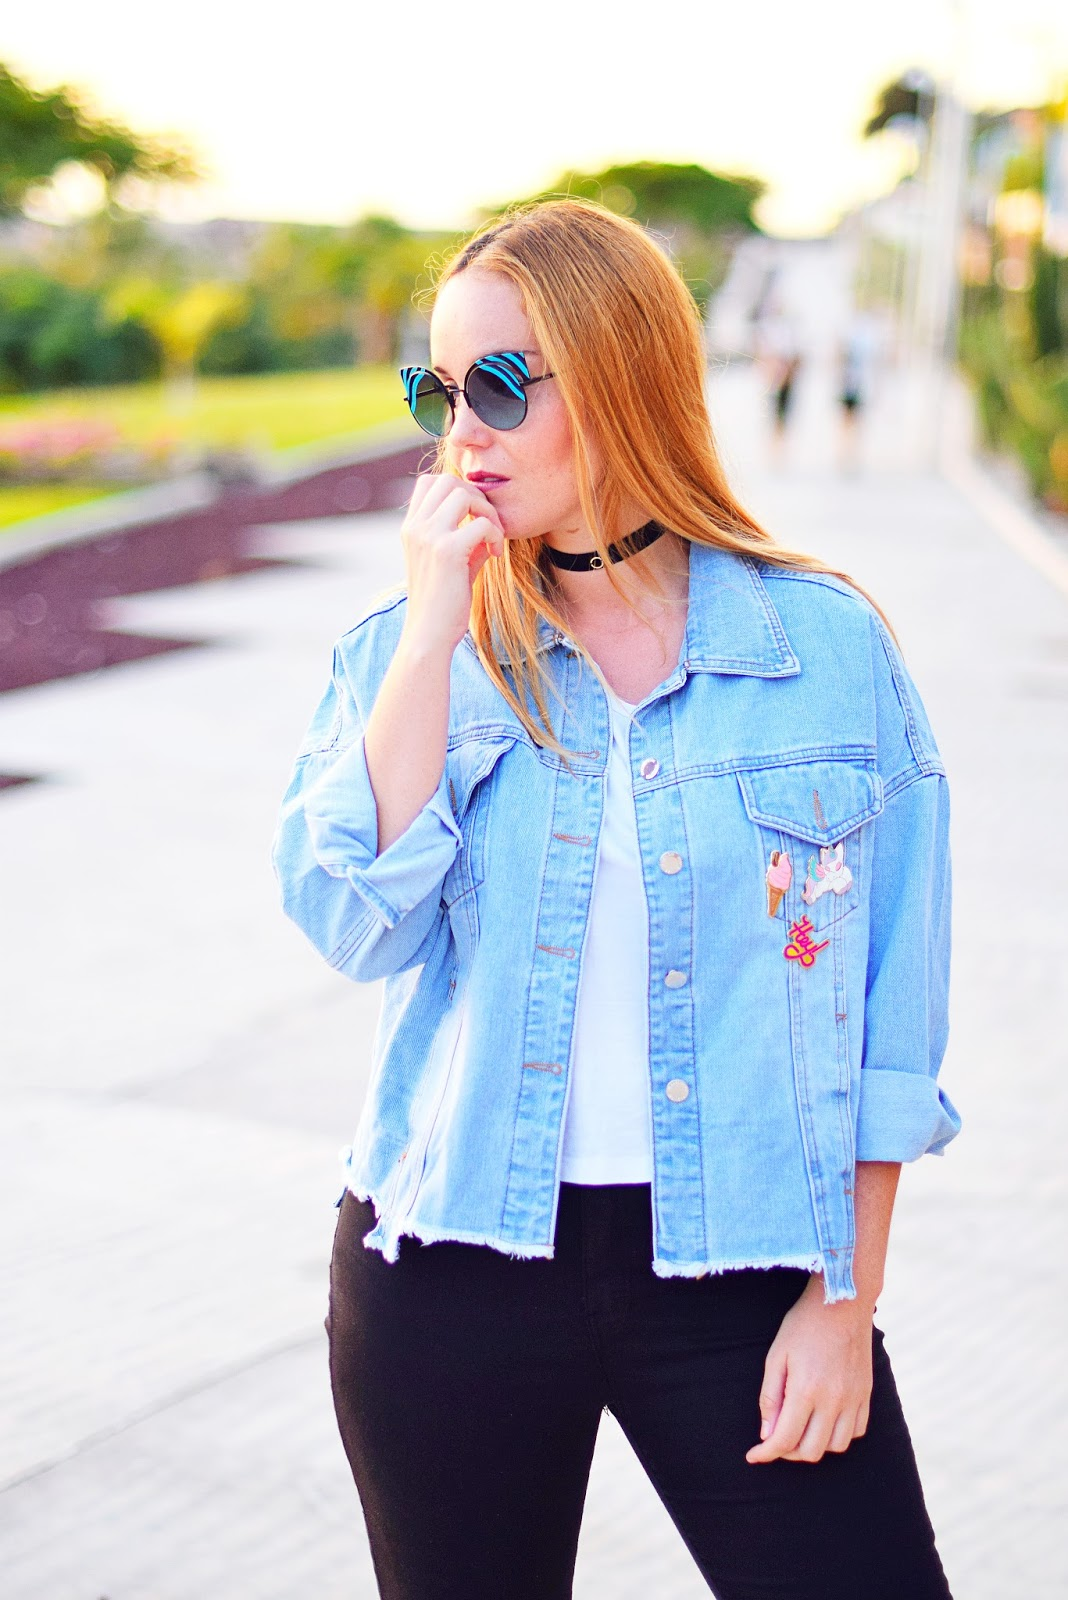 nery hdez, gearbest, denim jacket, choker, look años 90, pins, fendi, opticalh